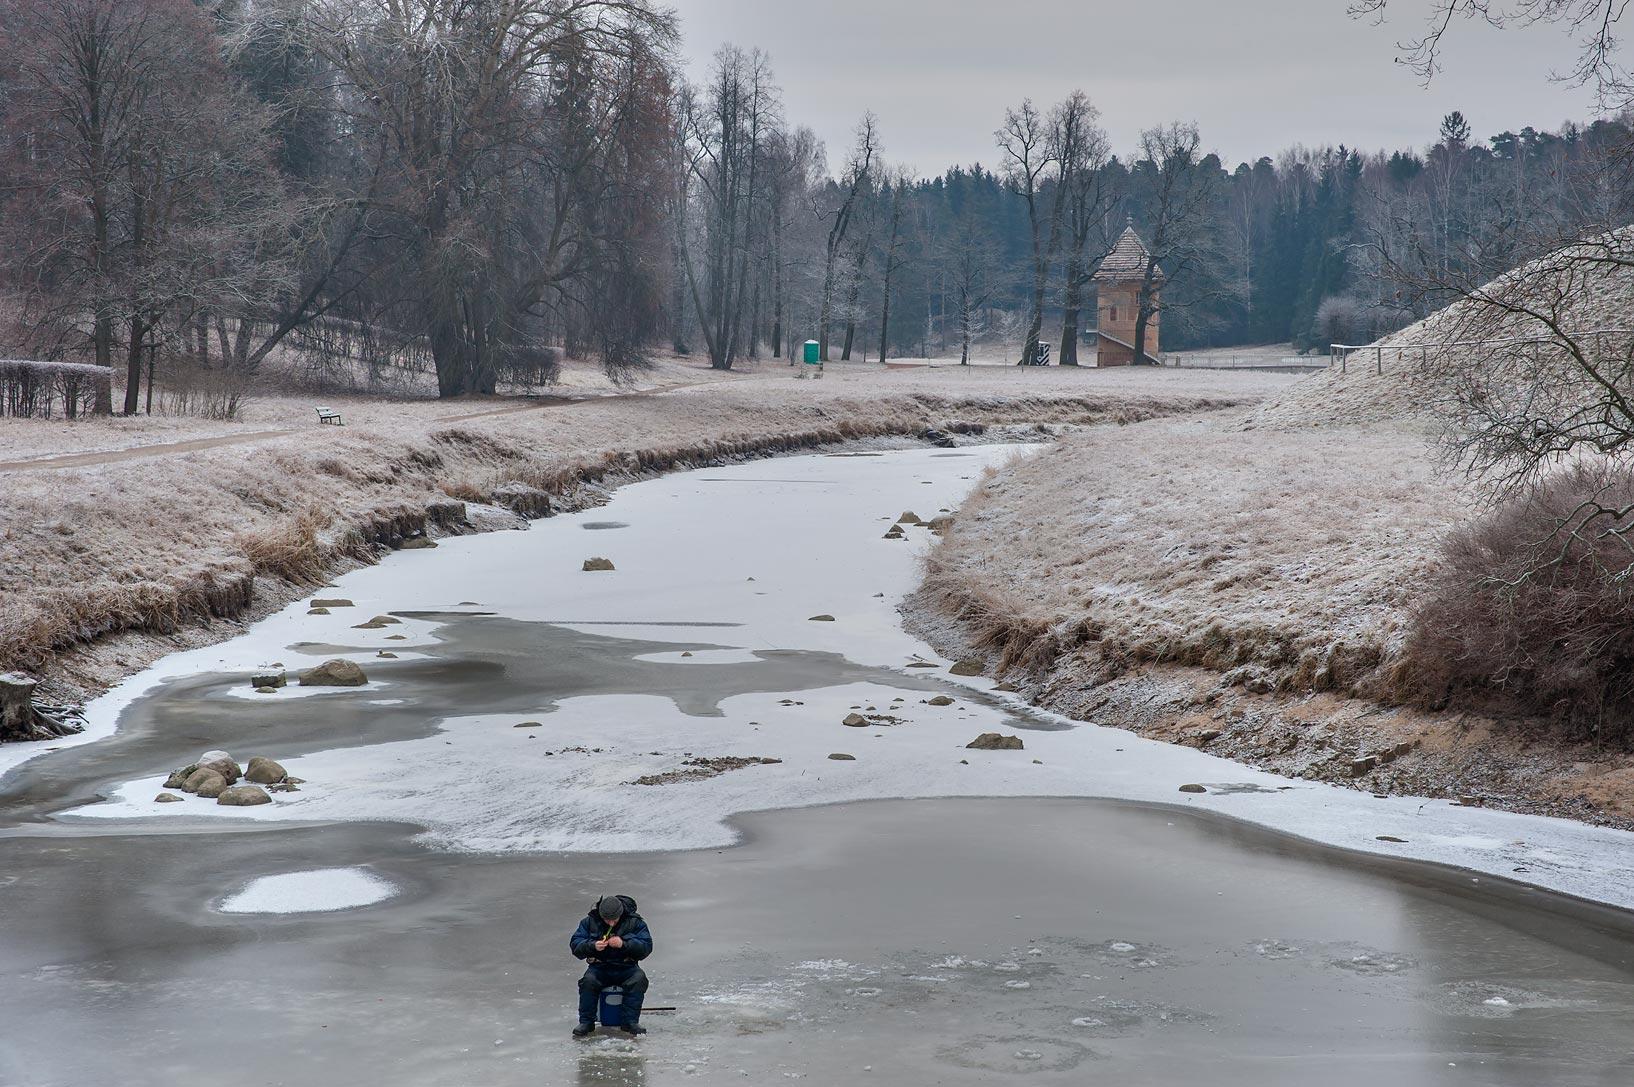 Ice fishing on Slavianka River in Pavlovsk Park. Pavlovsk, suburb of St.Petersburg, Russia